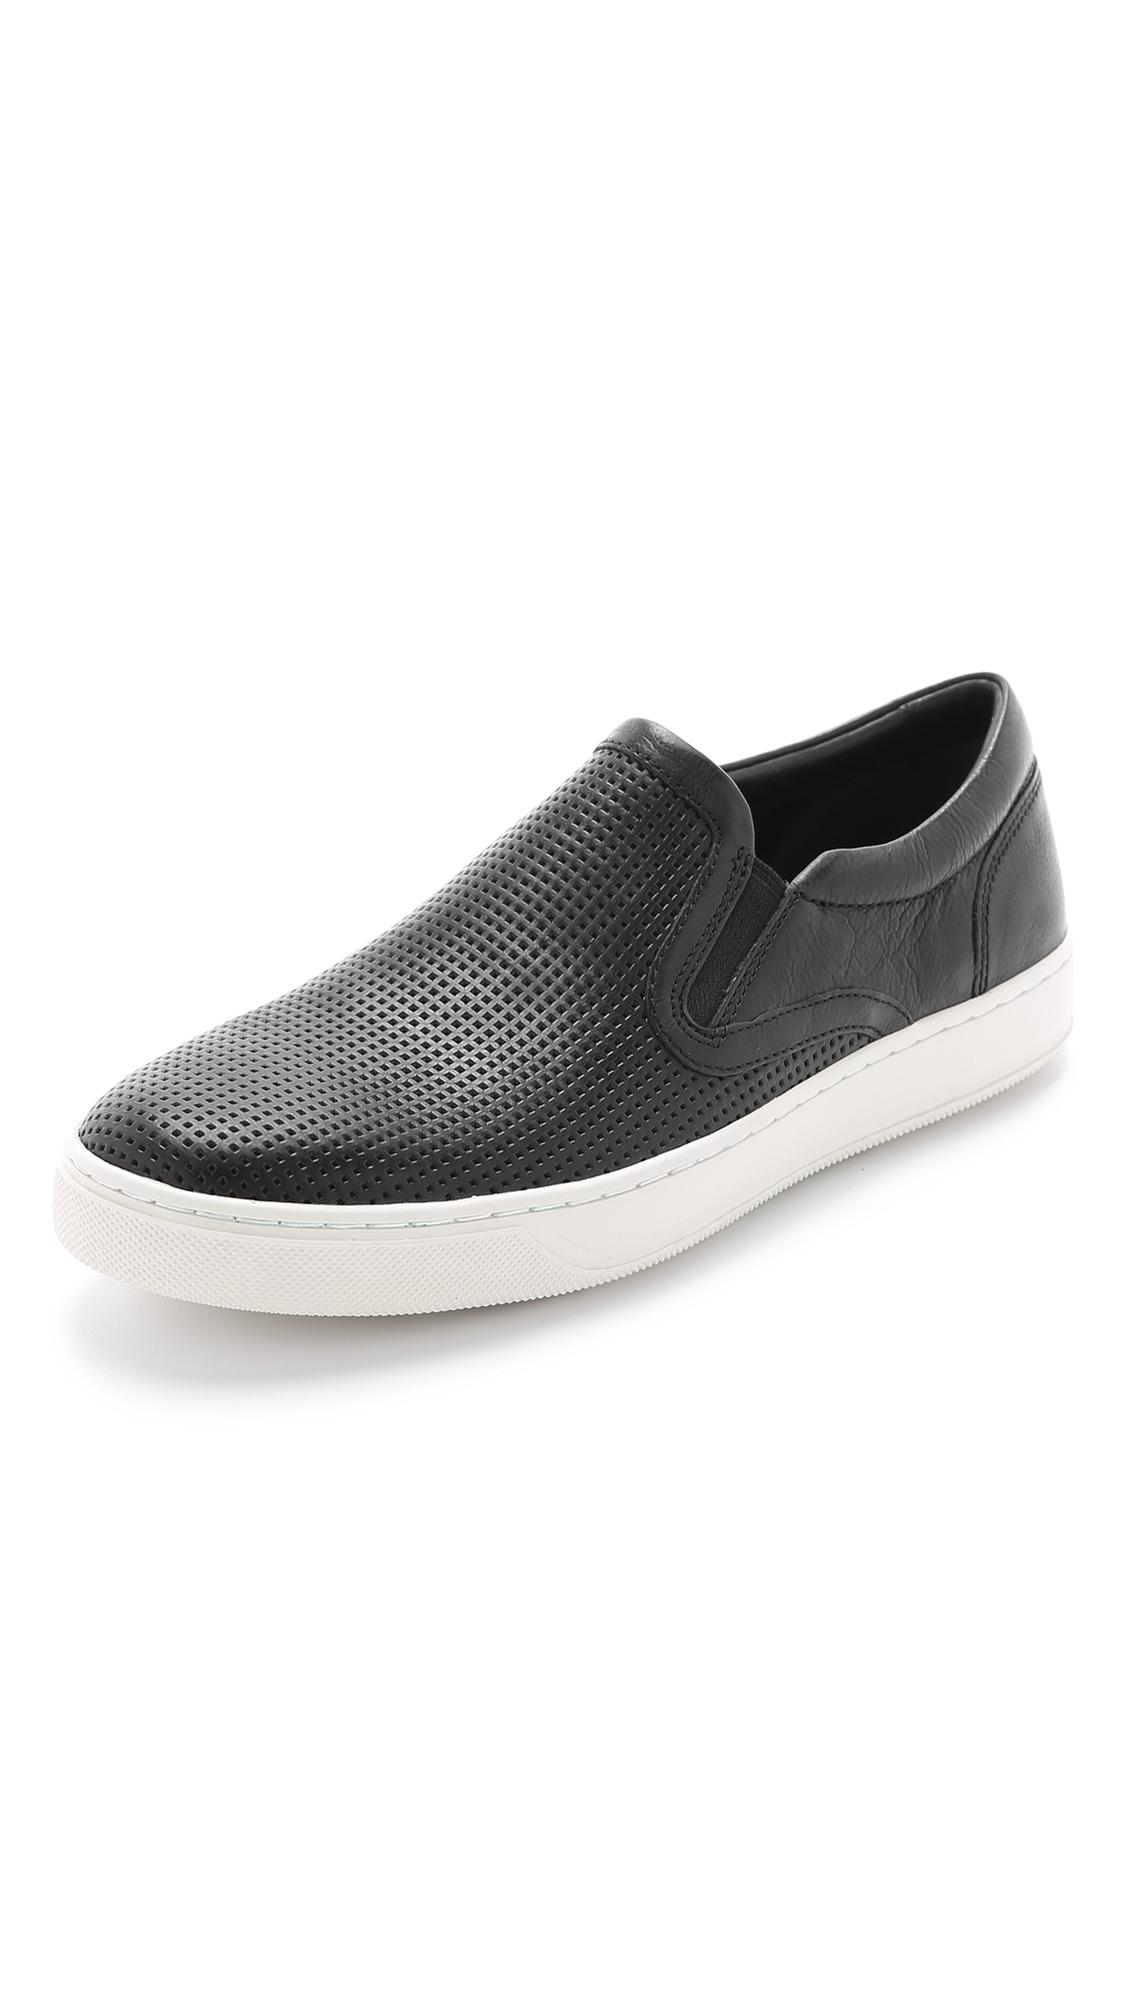 Vince Ace Perforated Leather Slip On Sneakers In Black For